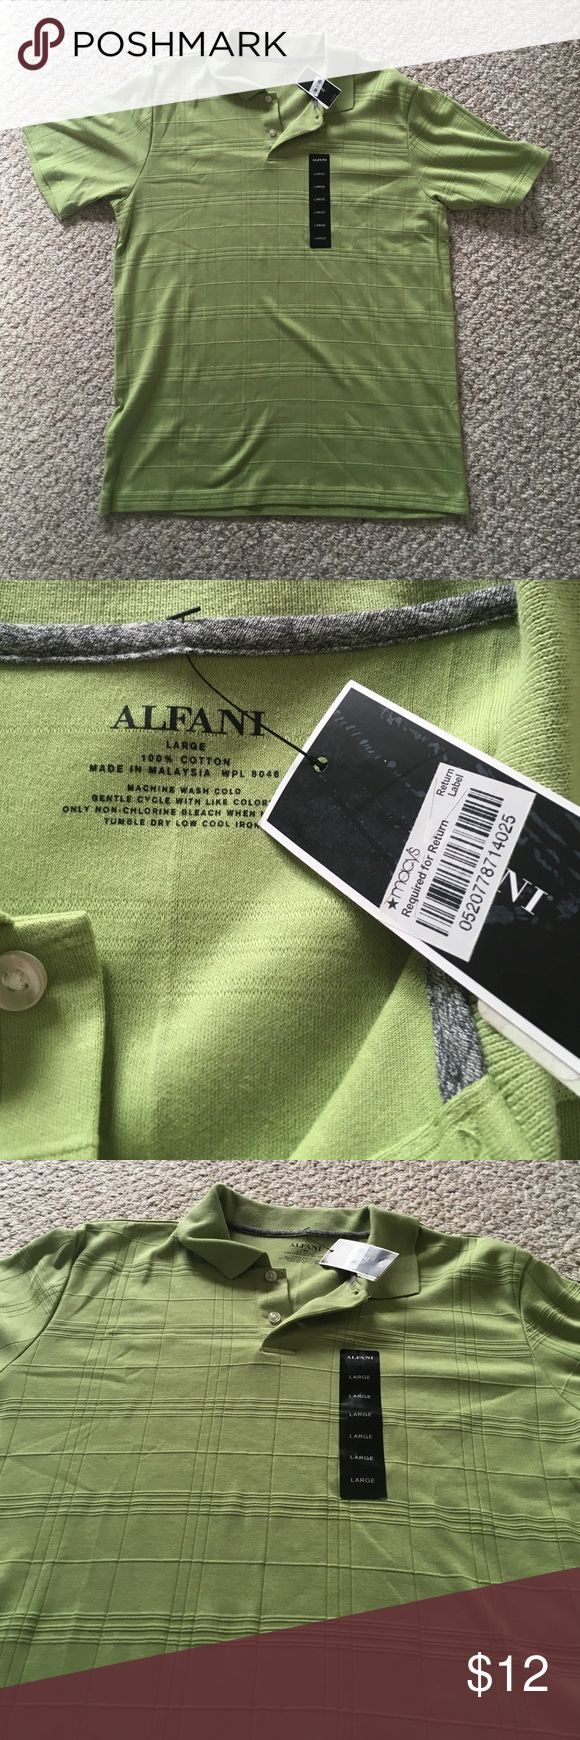 Green Alfani Polo Shirt Large This is beautiful green polo shirt with cream buttons, perfect for any occasion! Bundle to save! Alfani Shirts Polos